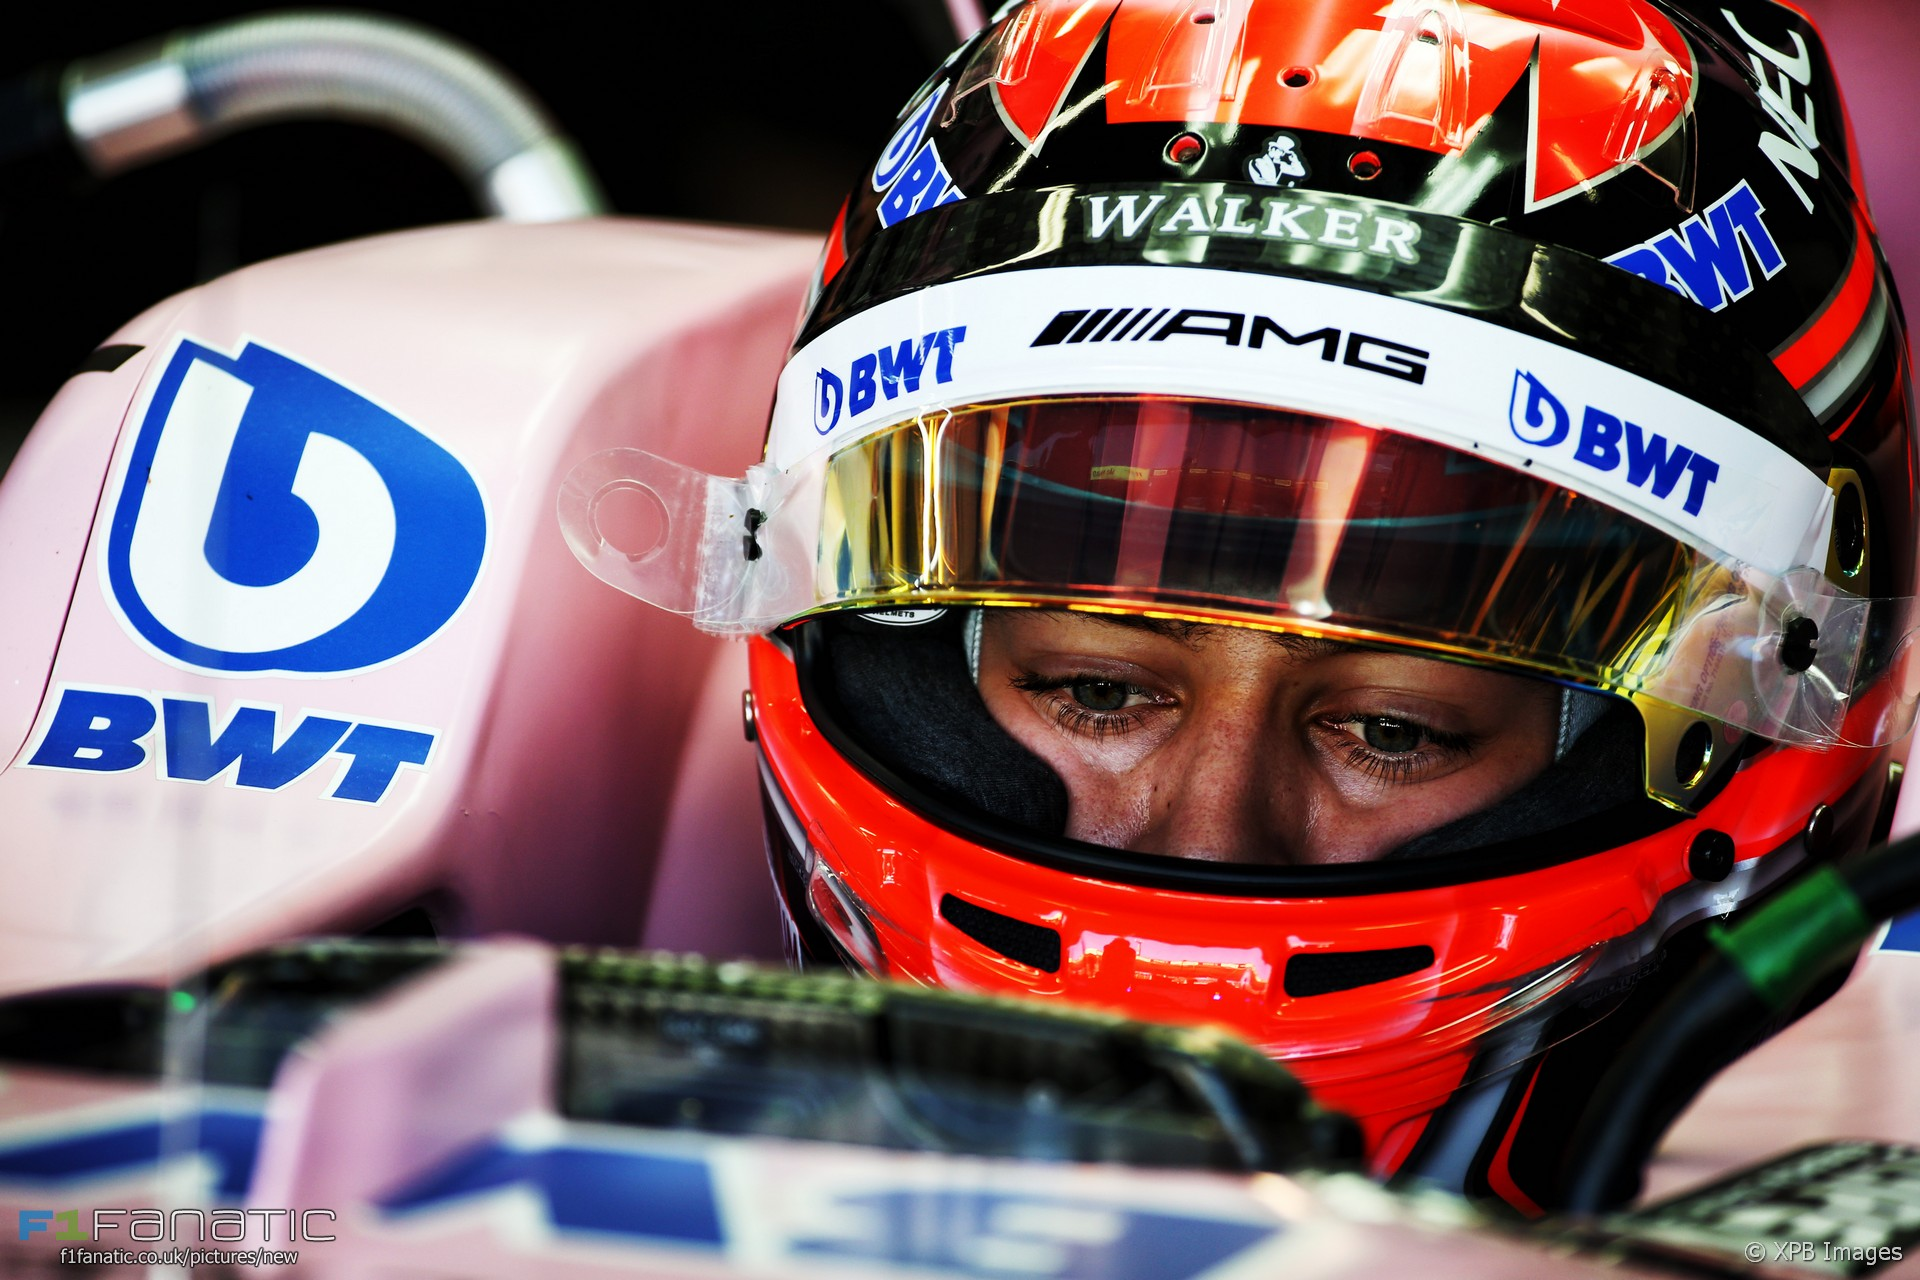 George Russell, Force India, Interlagos, 2017